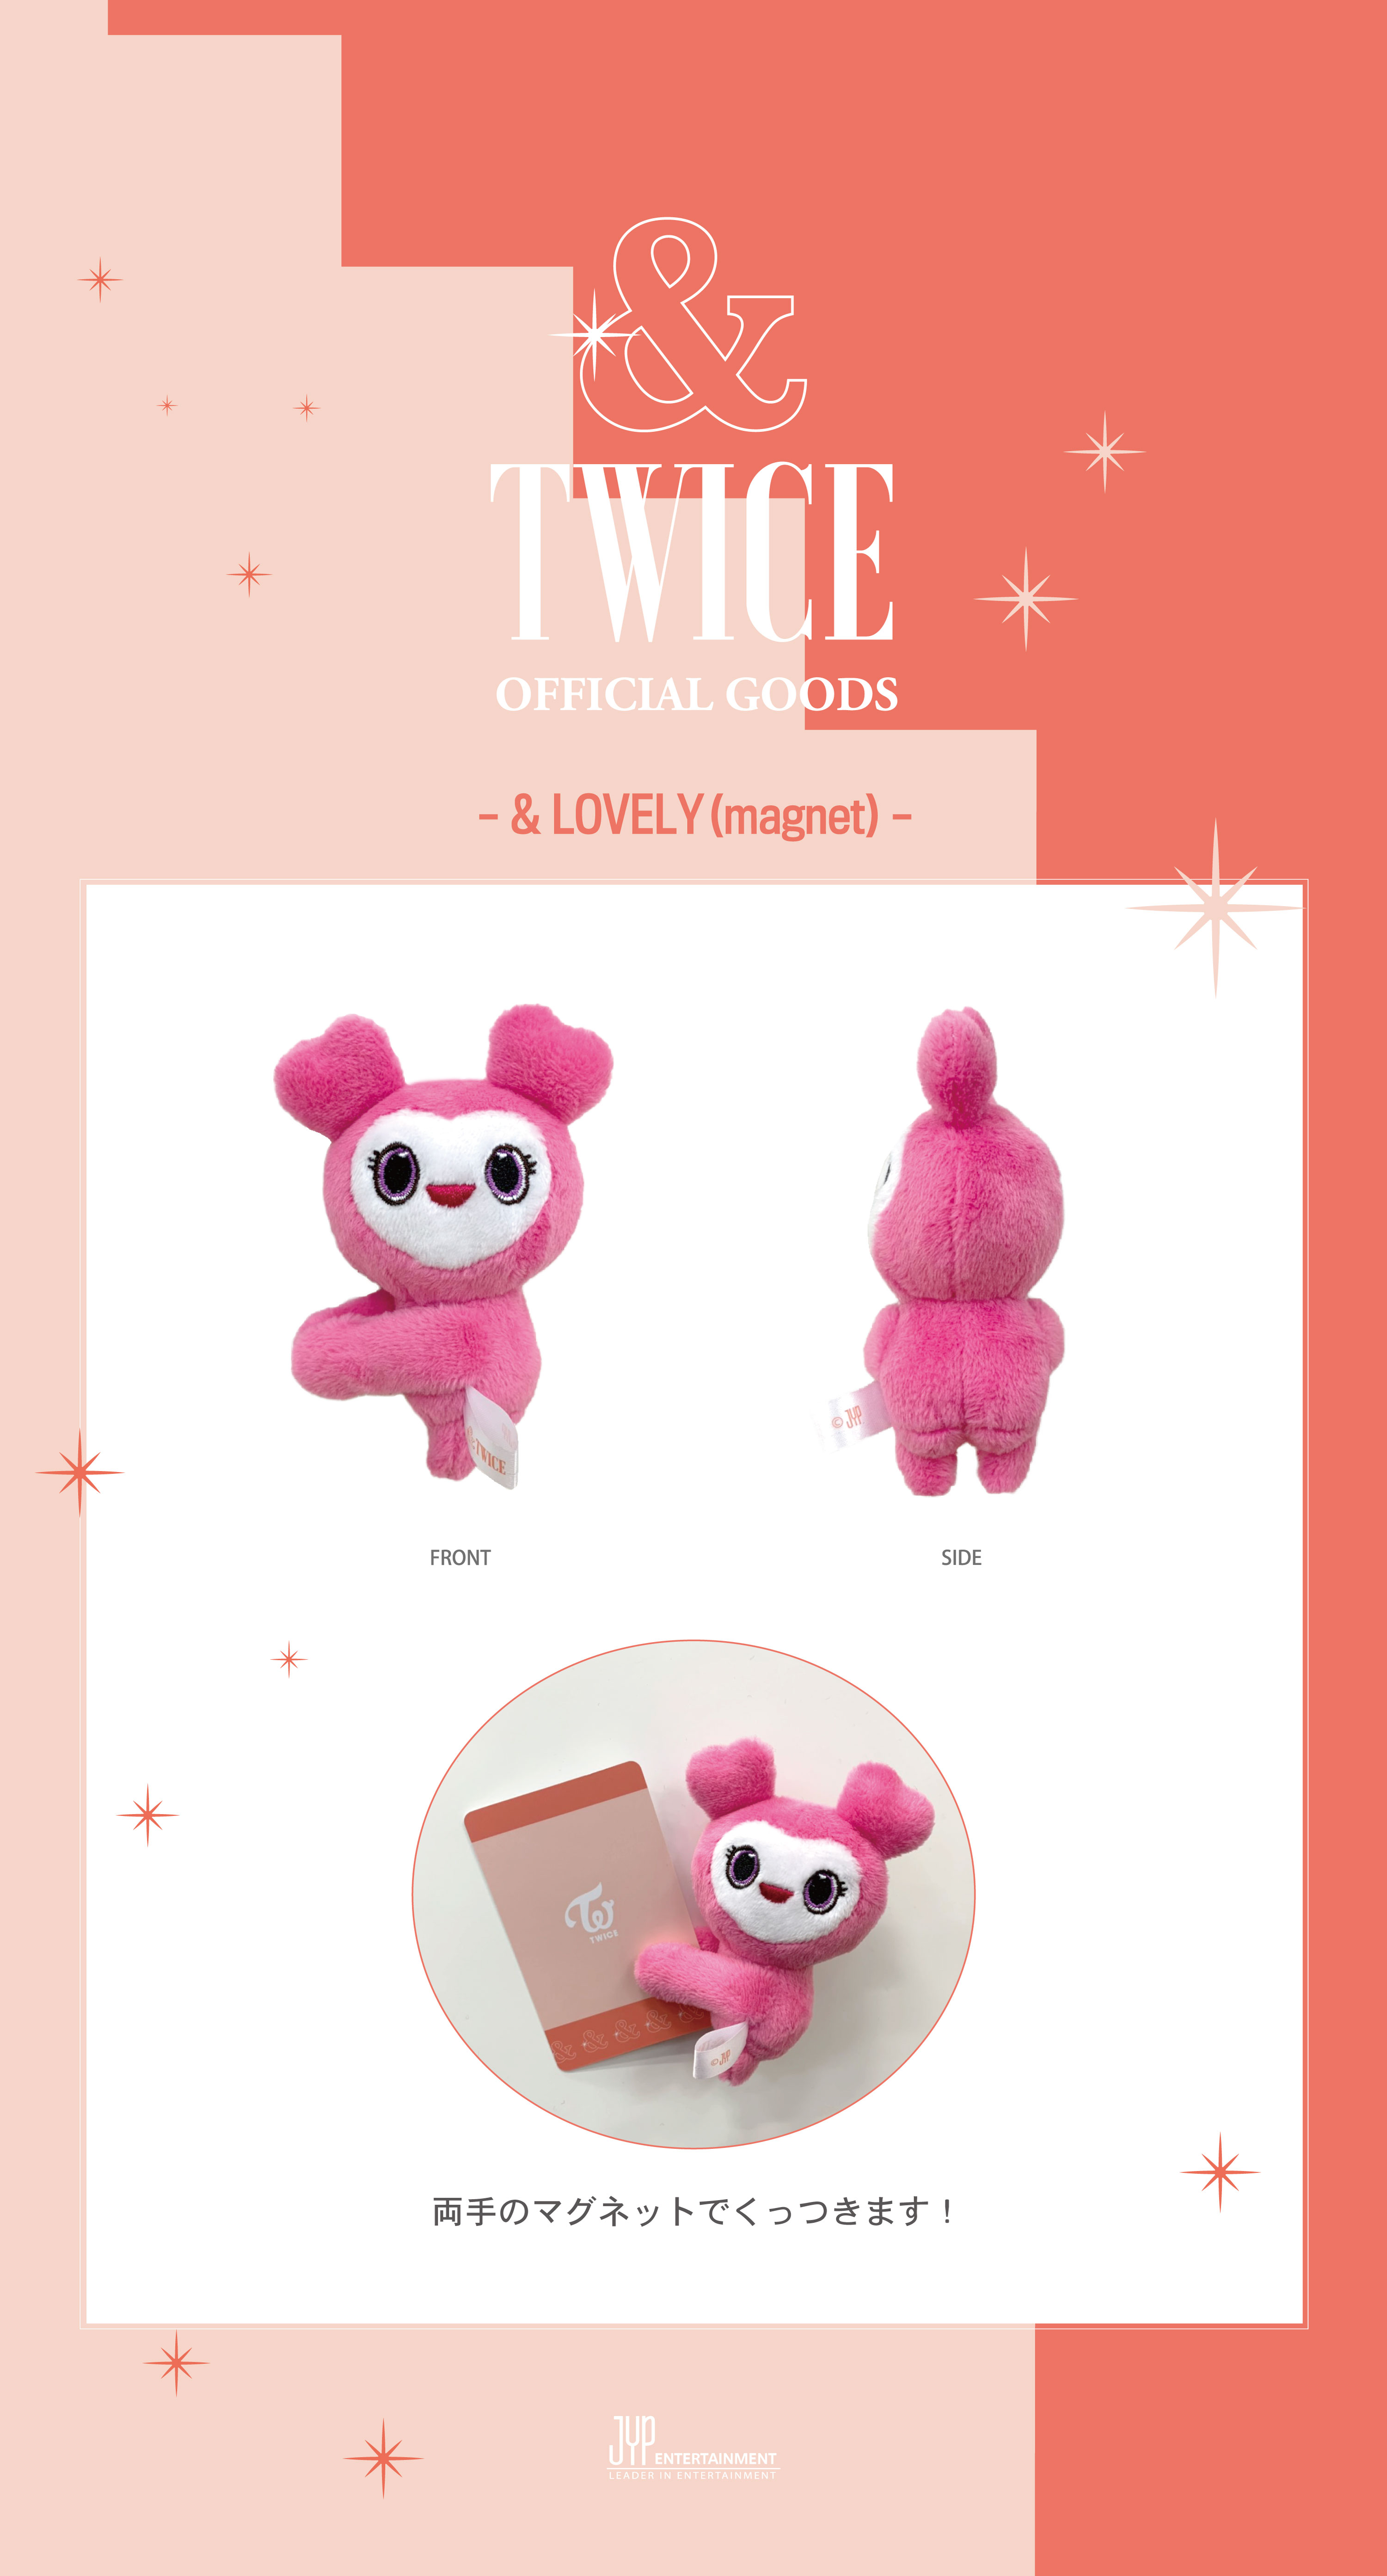 TWICE &TWICE release event online exclusive item 2.png